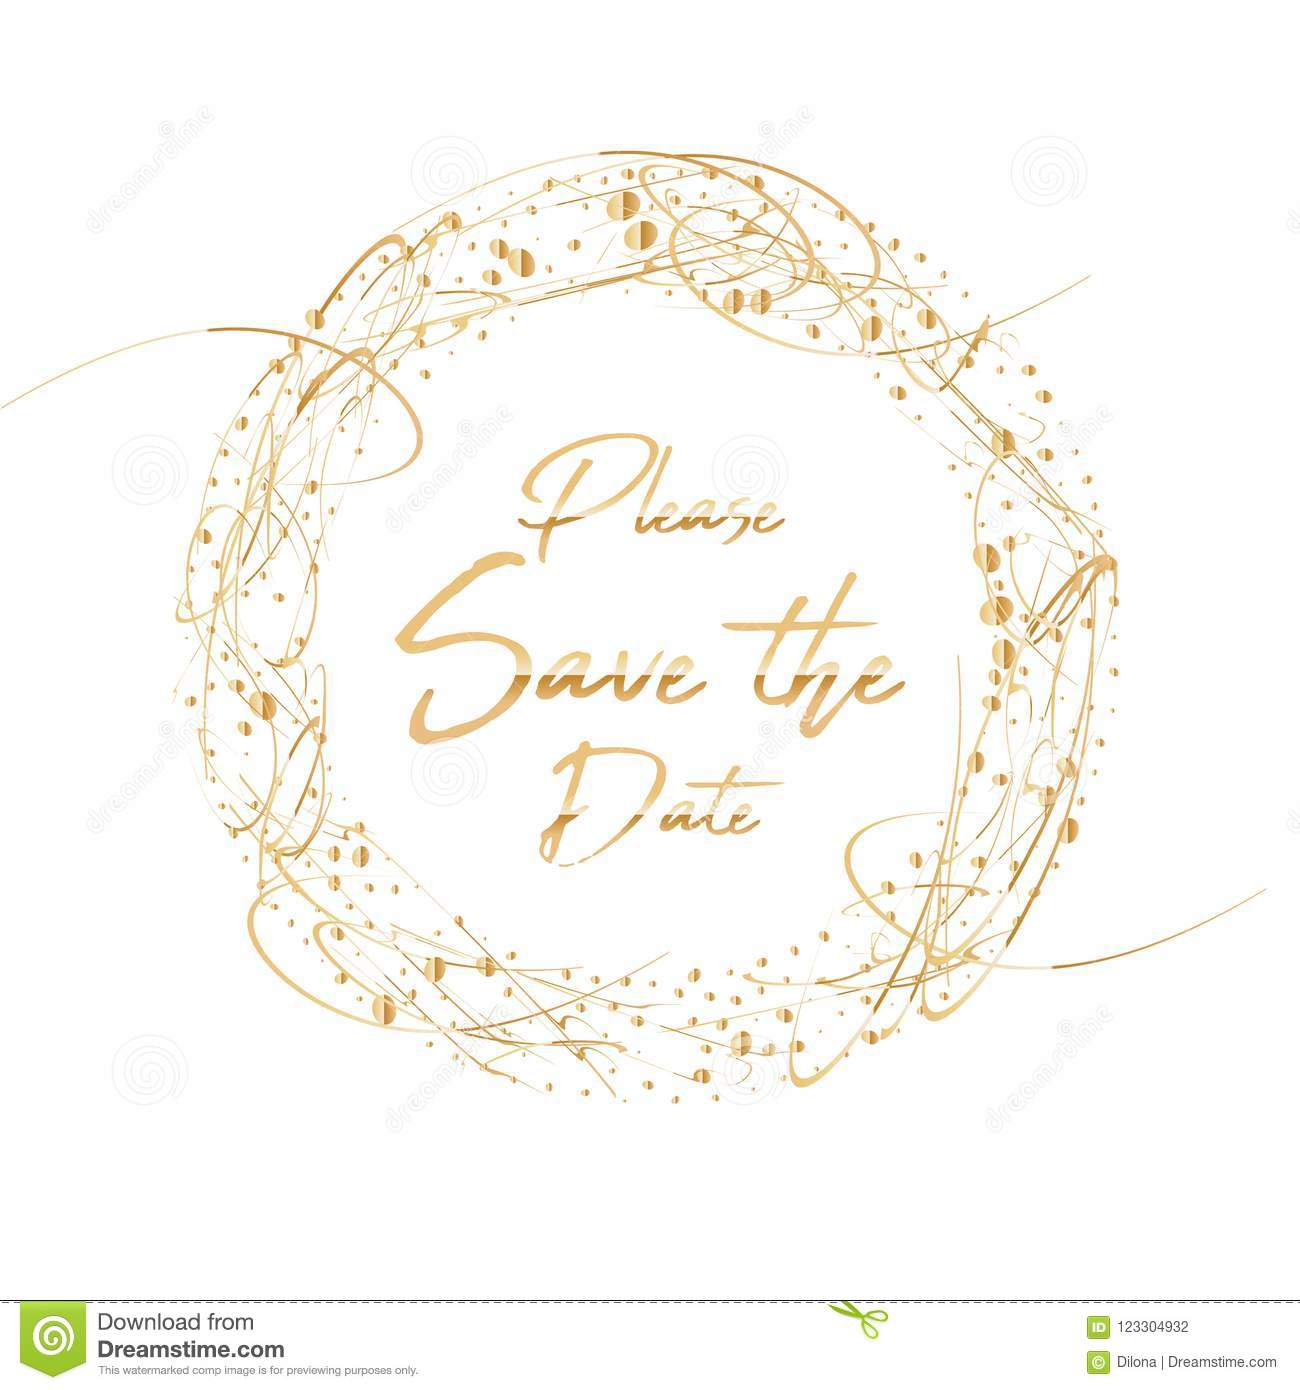 please save the date lettering vector handdrawn frame with golden